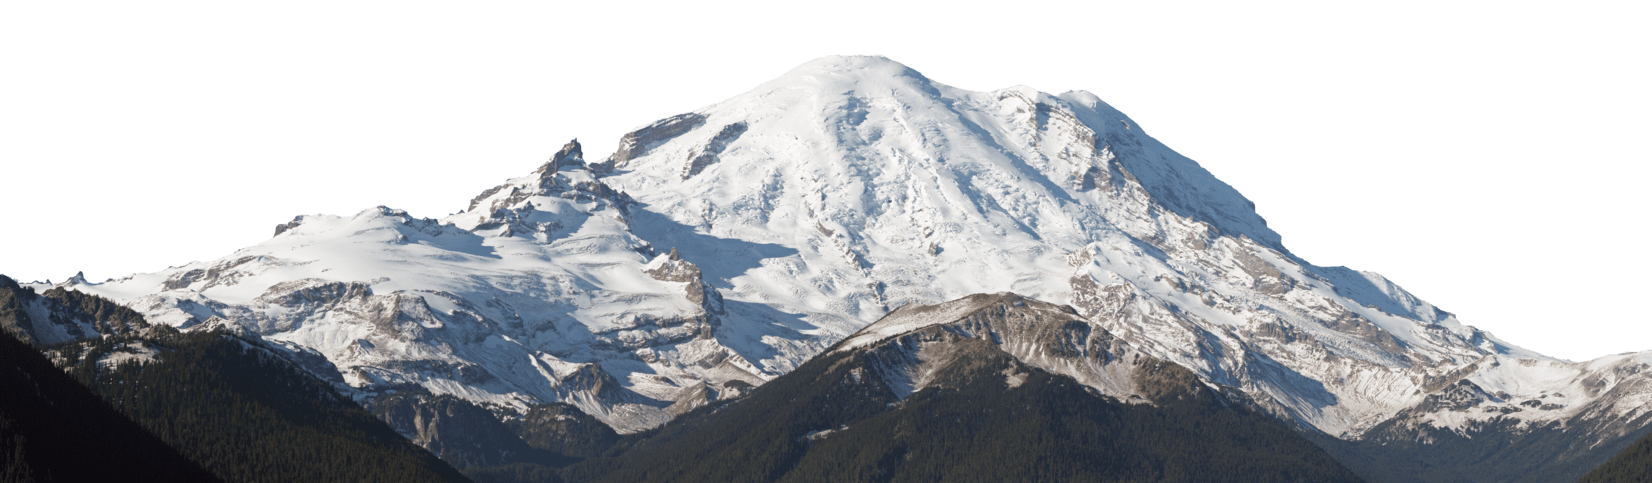 Mountain clipart snowy mountain. Png free images toppng